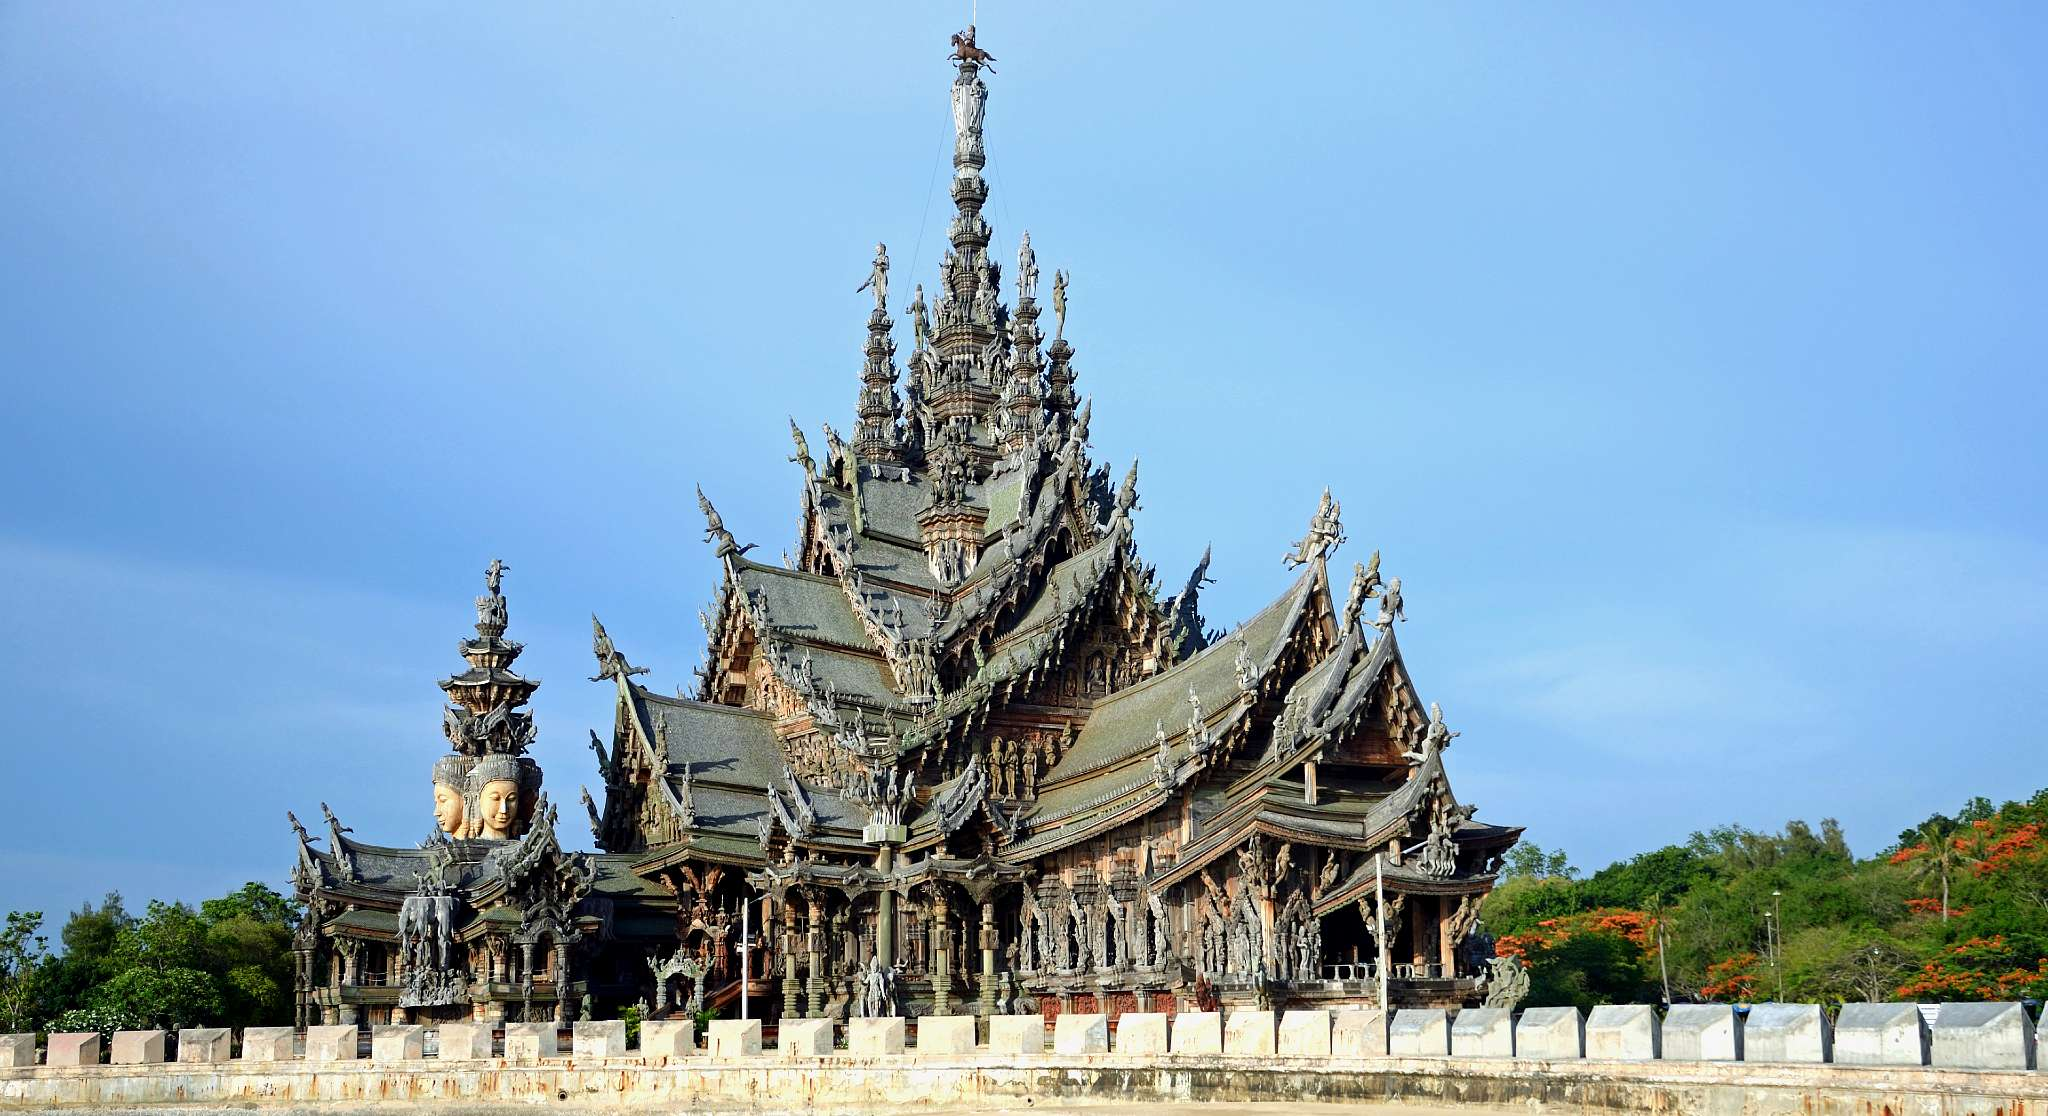 wooden temple, Sanctuary Of Truth Pattaya from a distance